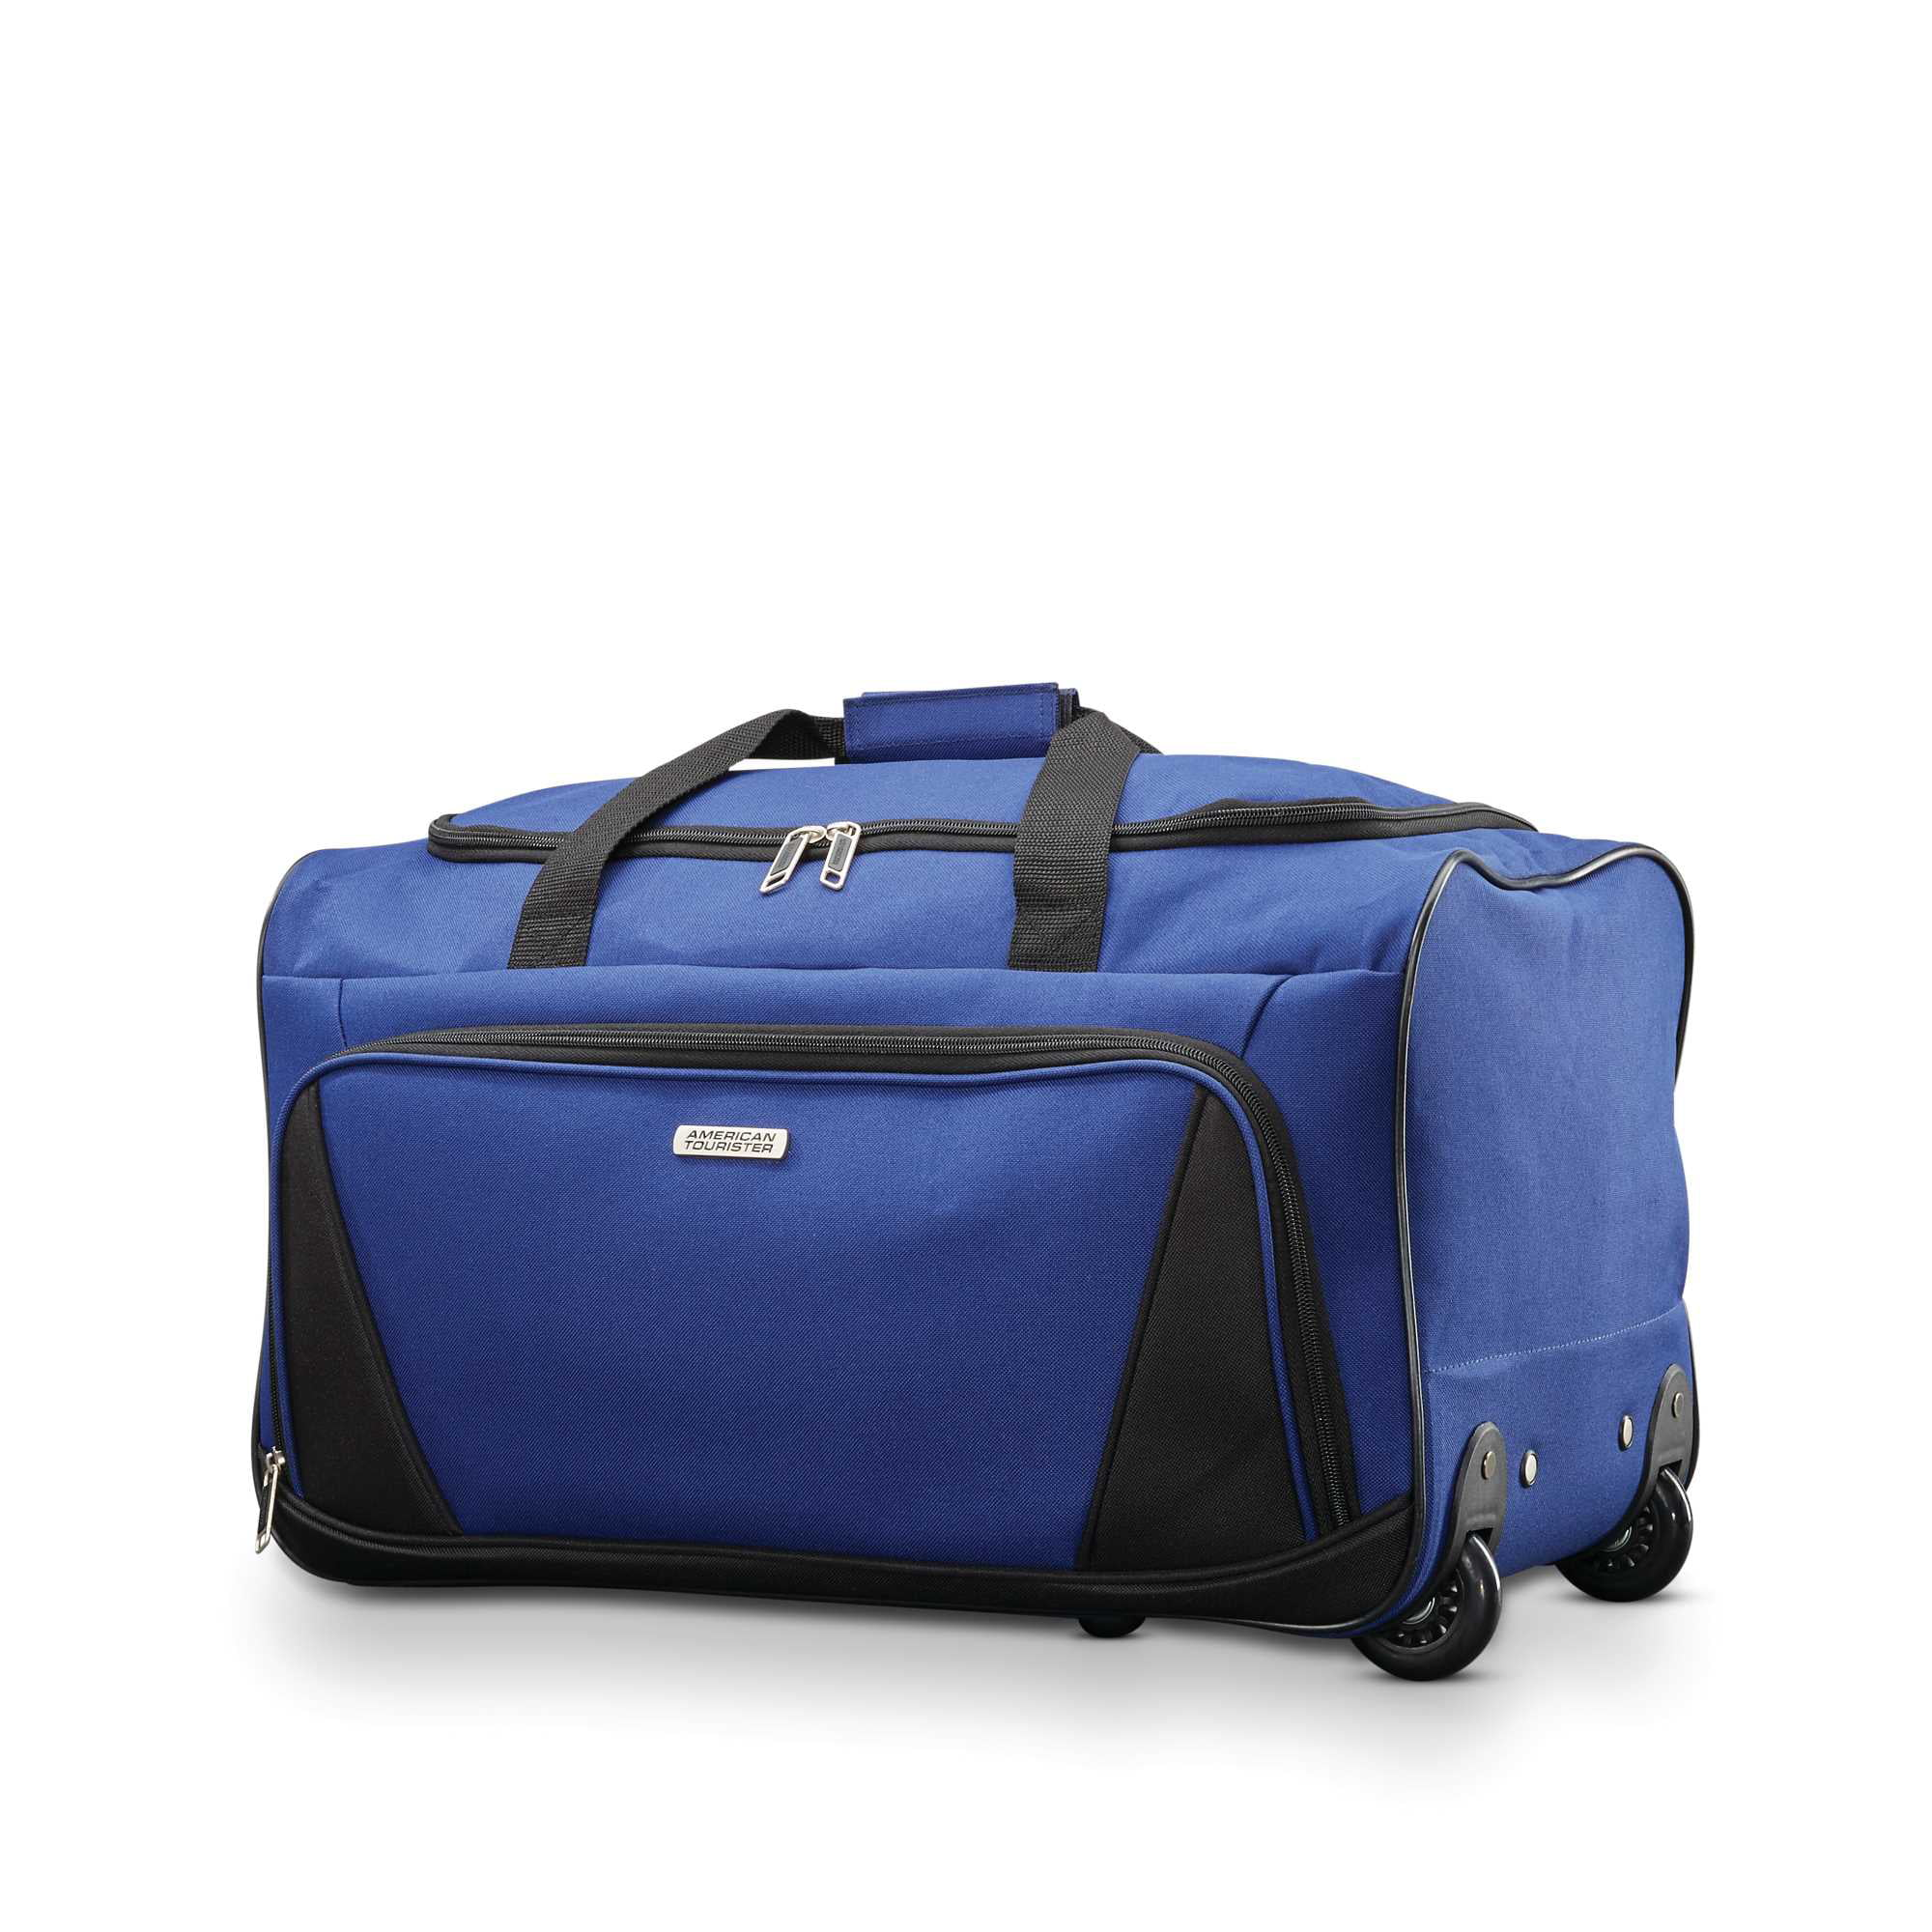 American Tourister 4-Piece Luggage Set - Walmart.com